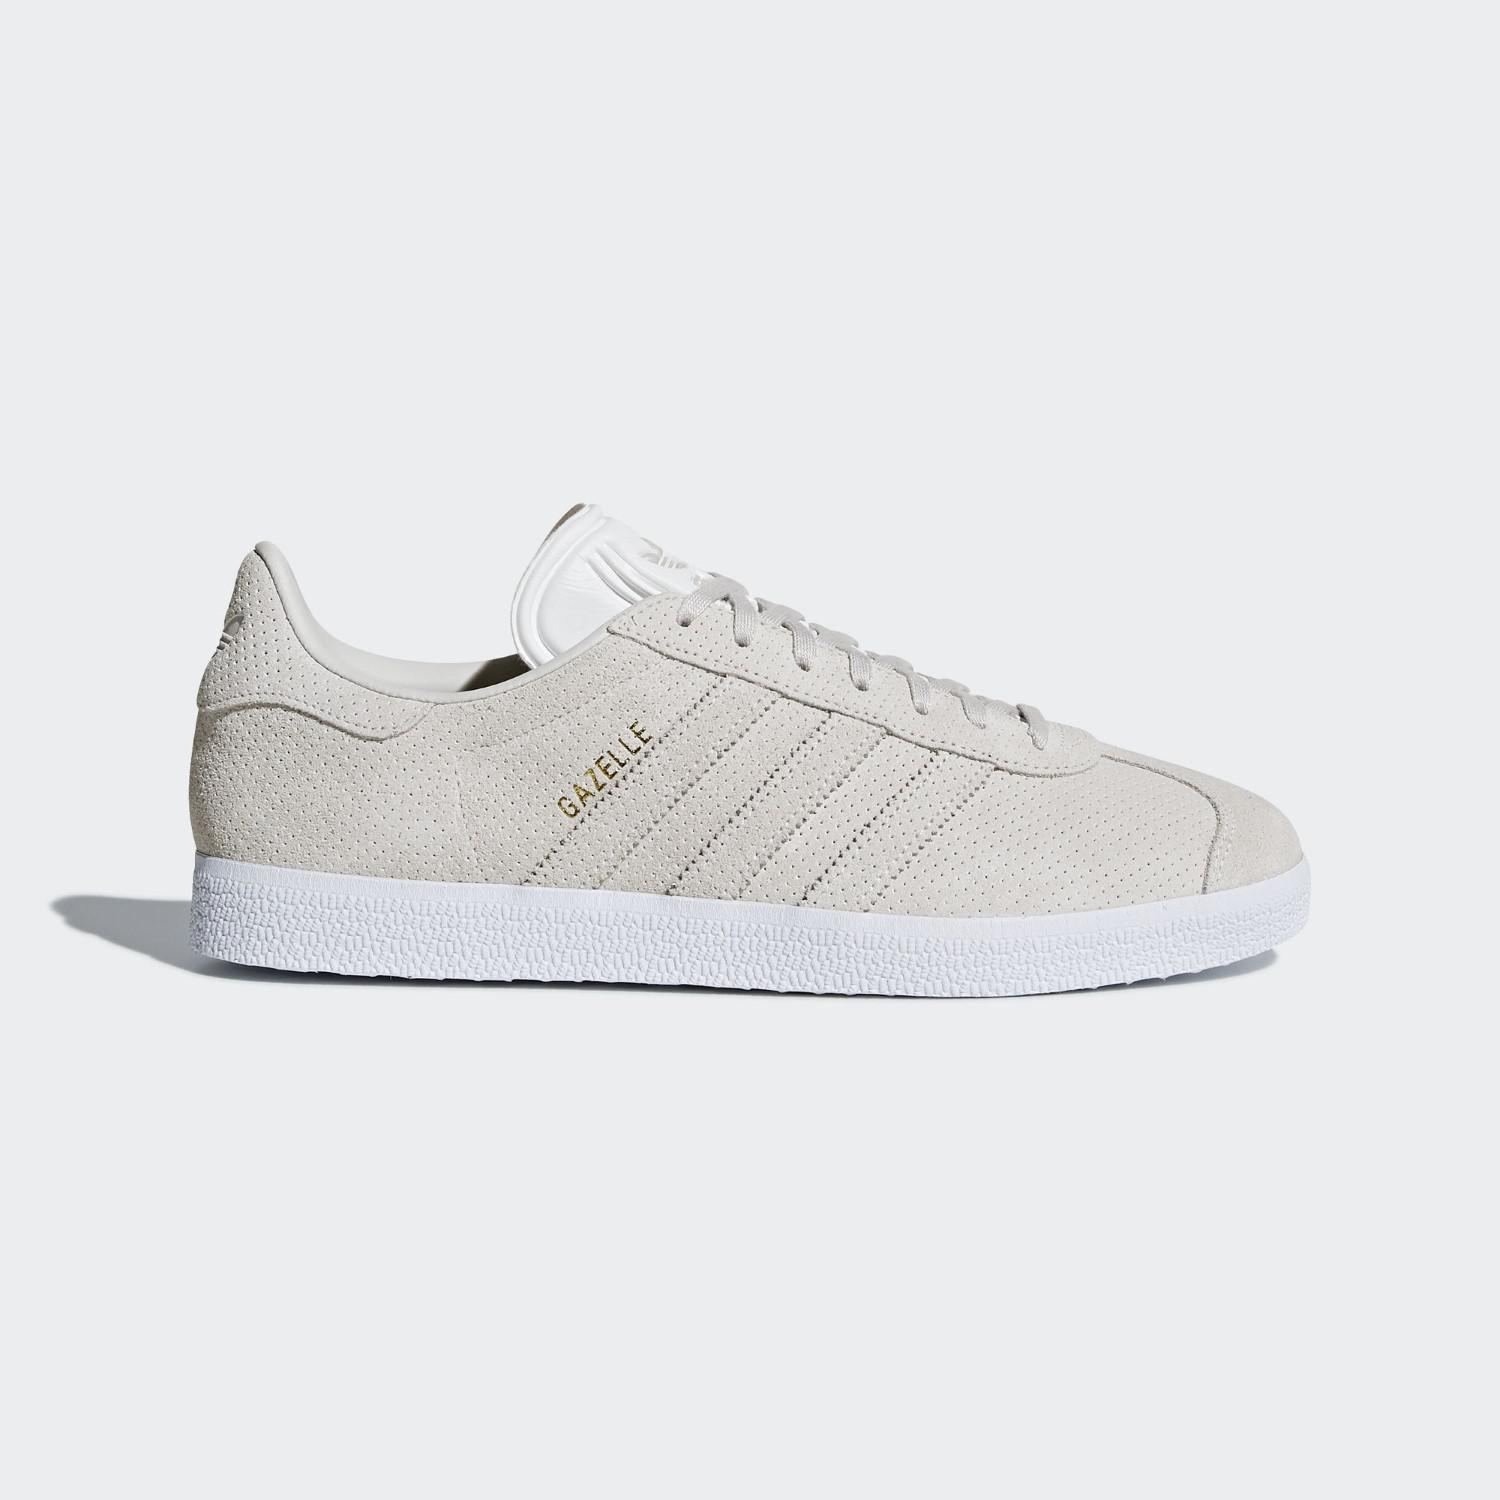 pretty nice 66f81 a6957 Lyst - Adidas Gazelle Shoes in Gray for Men